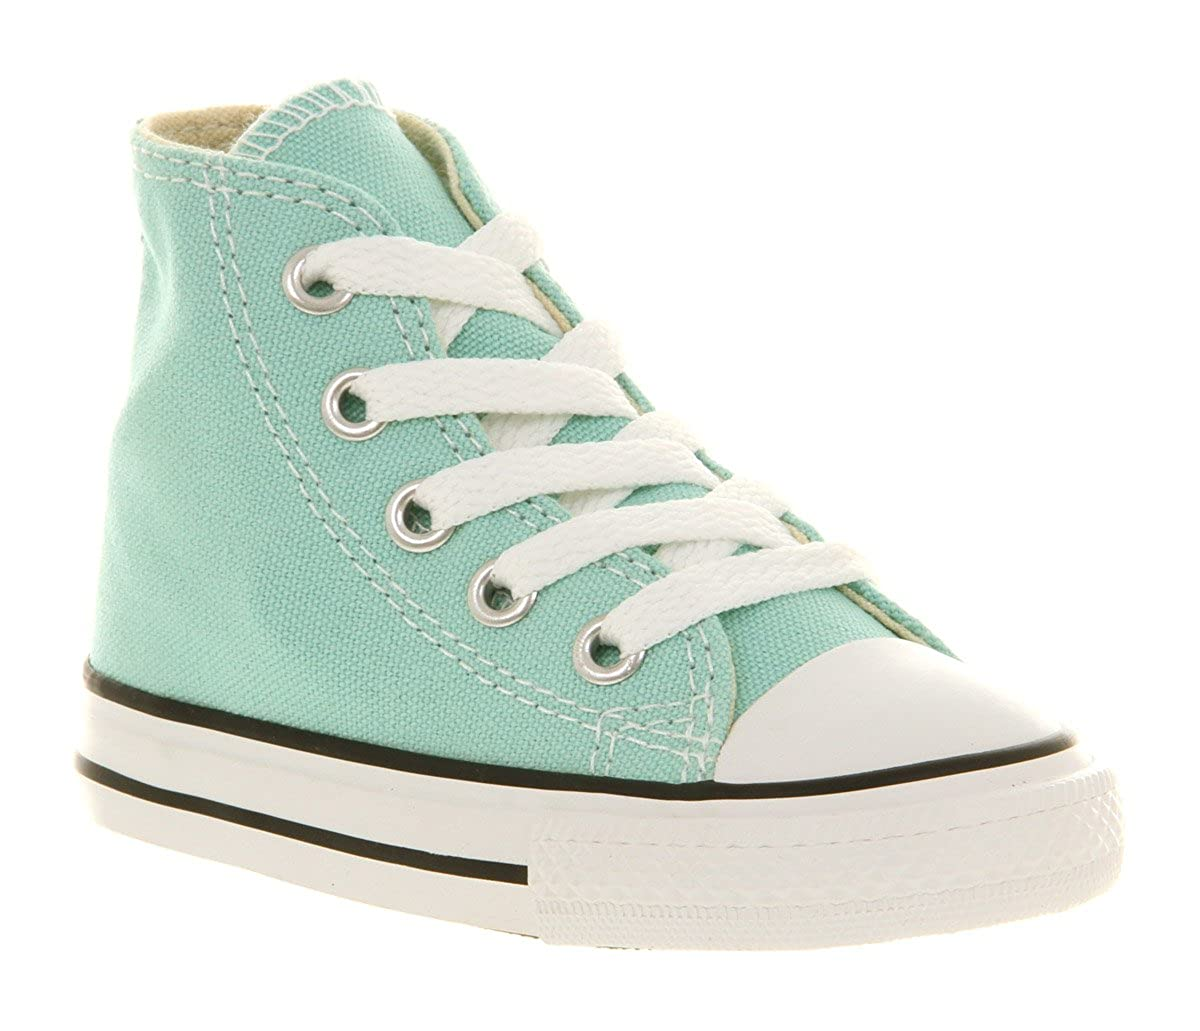 70010c34be86 Converse Small Star Hi Canvas Kids 12+ Months Beach Glass Blue - 4 Infant   Amazon.co.uk  Shoes   Bags